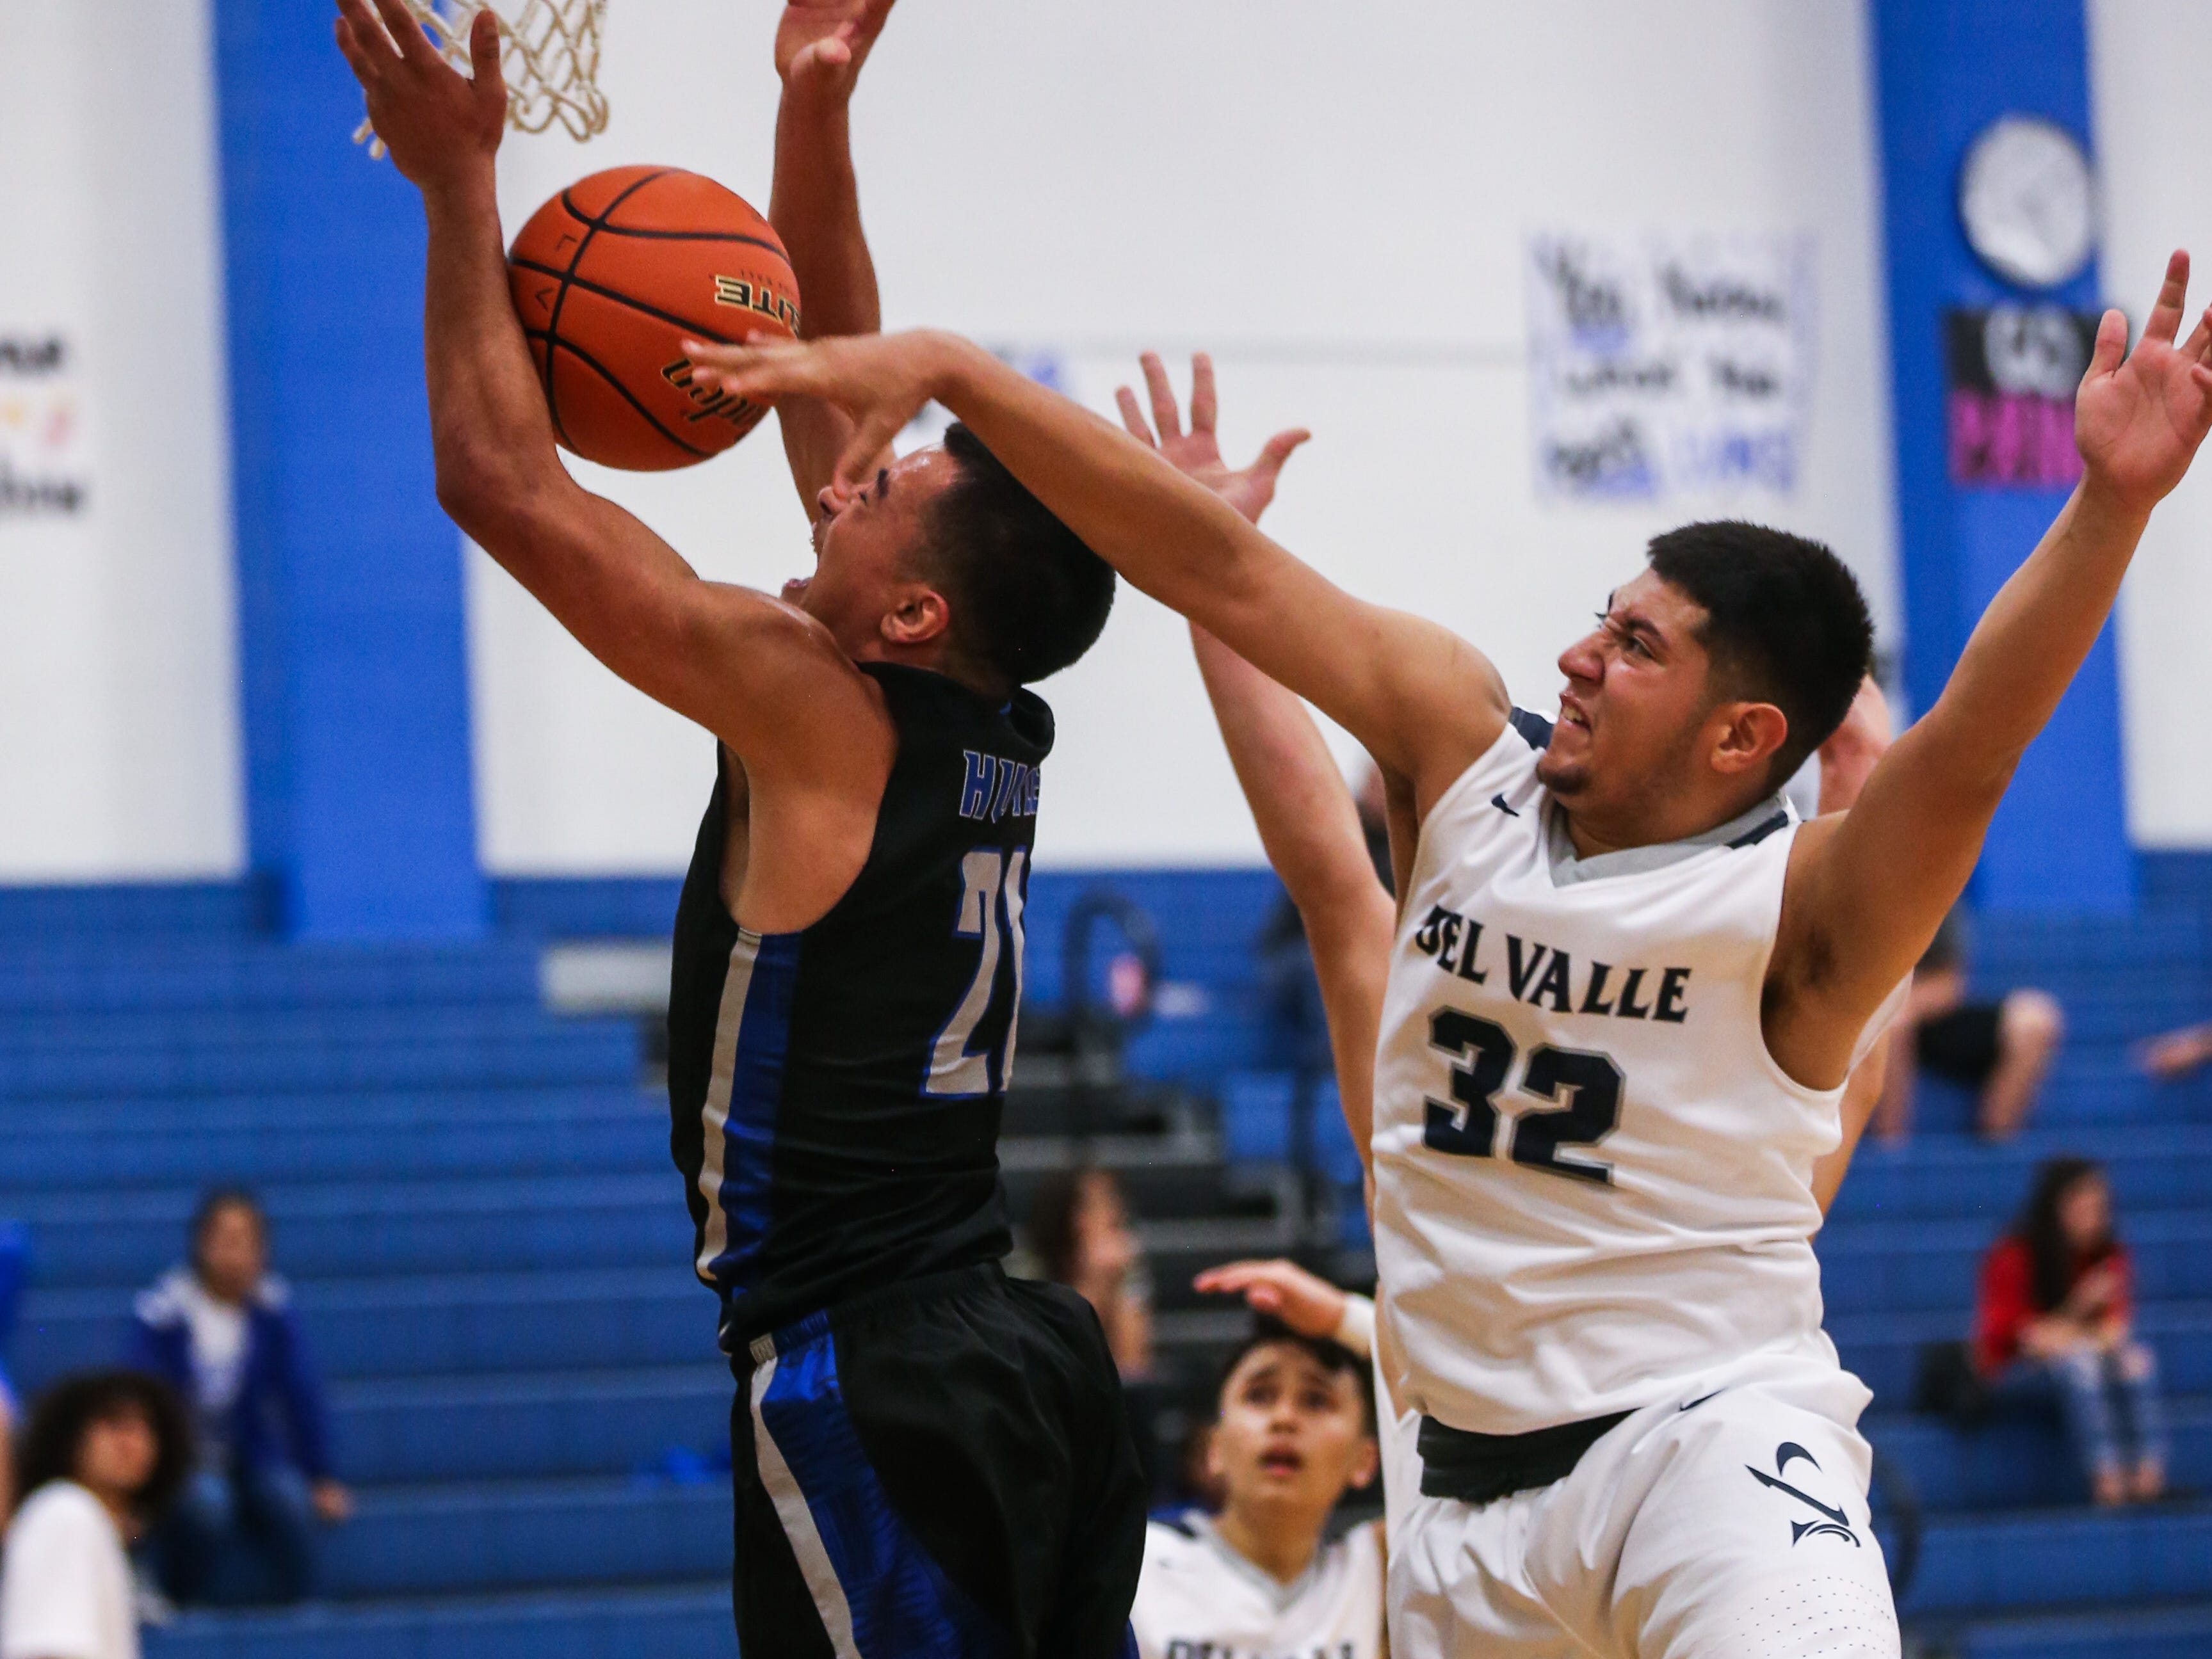 Lake View's Johnny Espinosa jumps to make a shot as Del Valle blocks during the Doug McCutchen Basketball Tournament Thursday, Nov. 29, 2018, at Central High School.